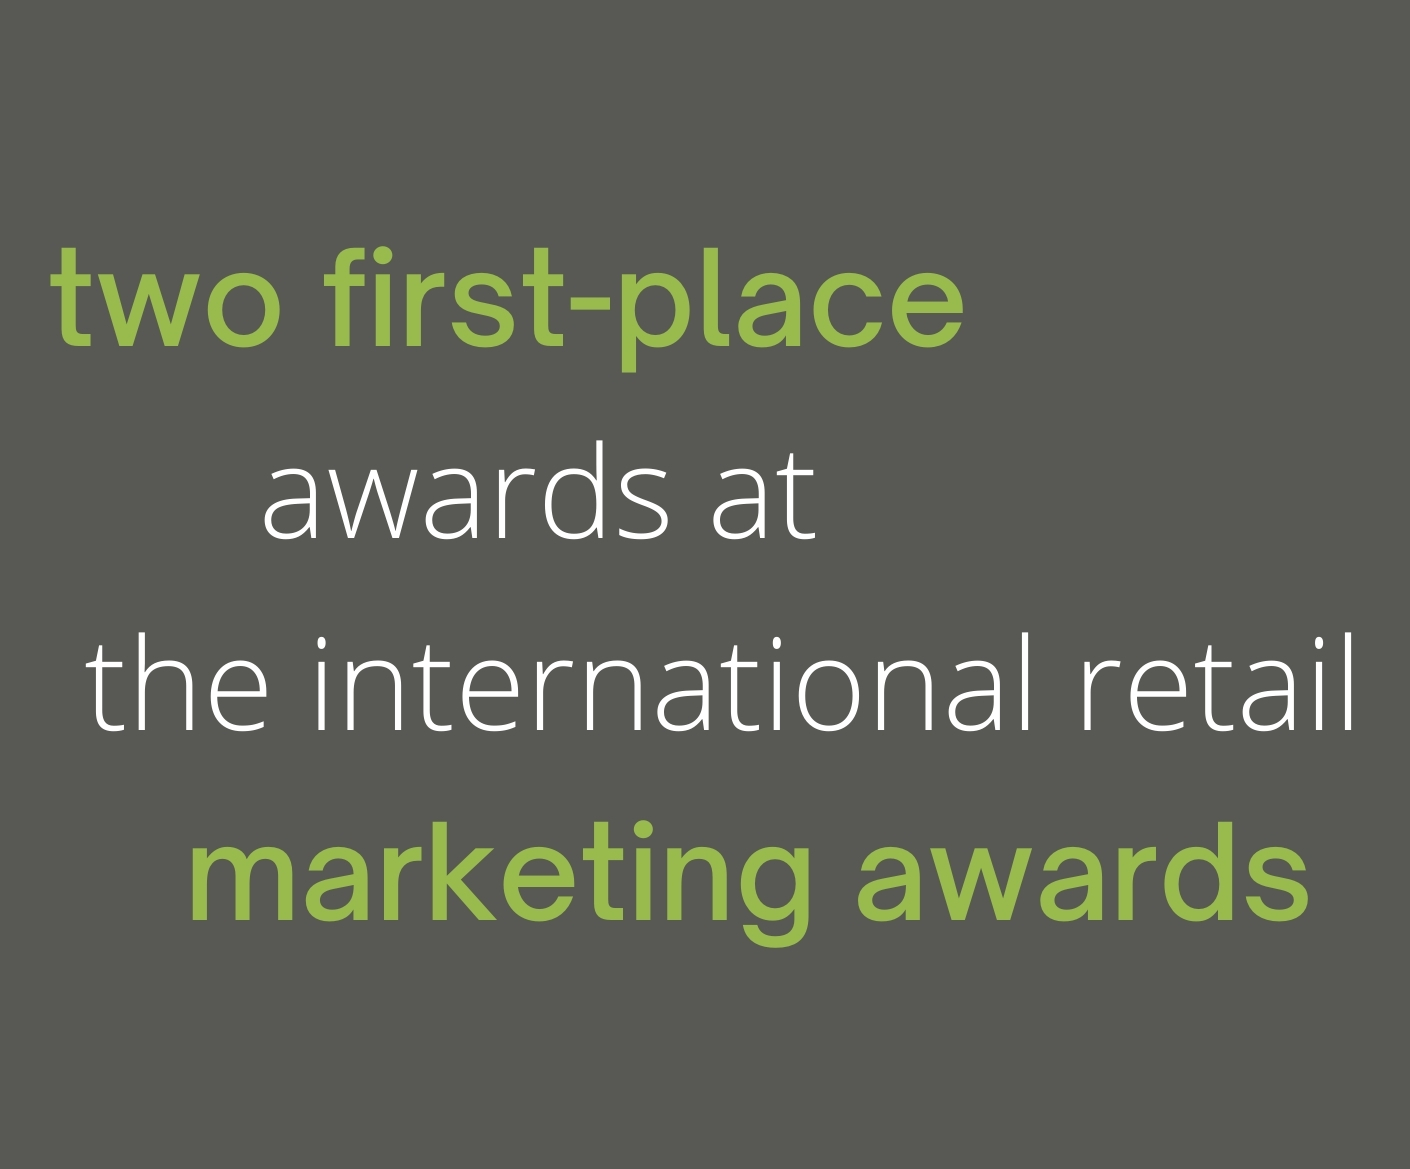 two first-place awards at the international retail marketing awards